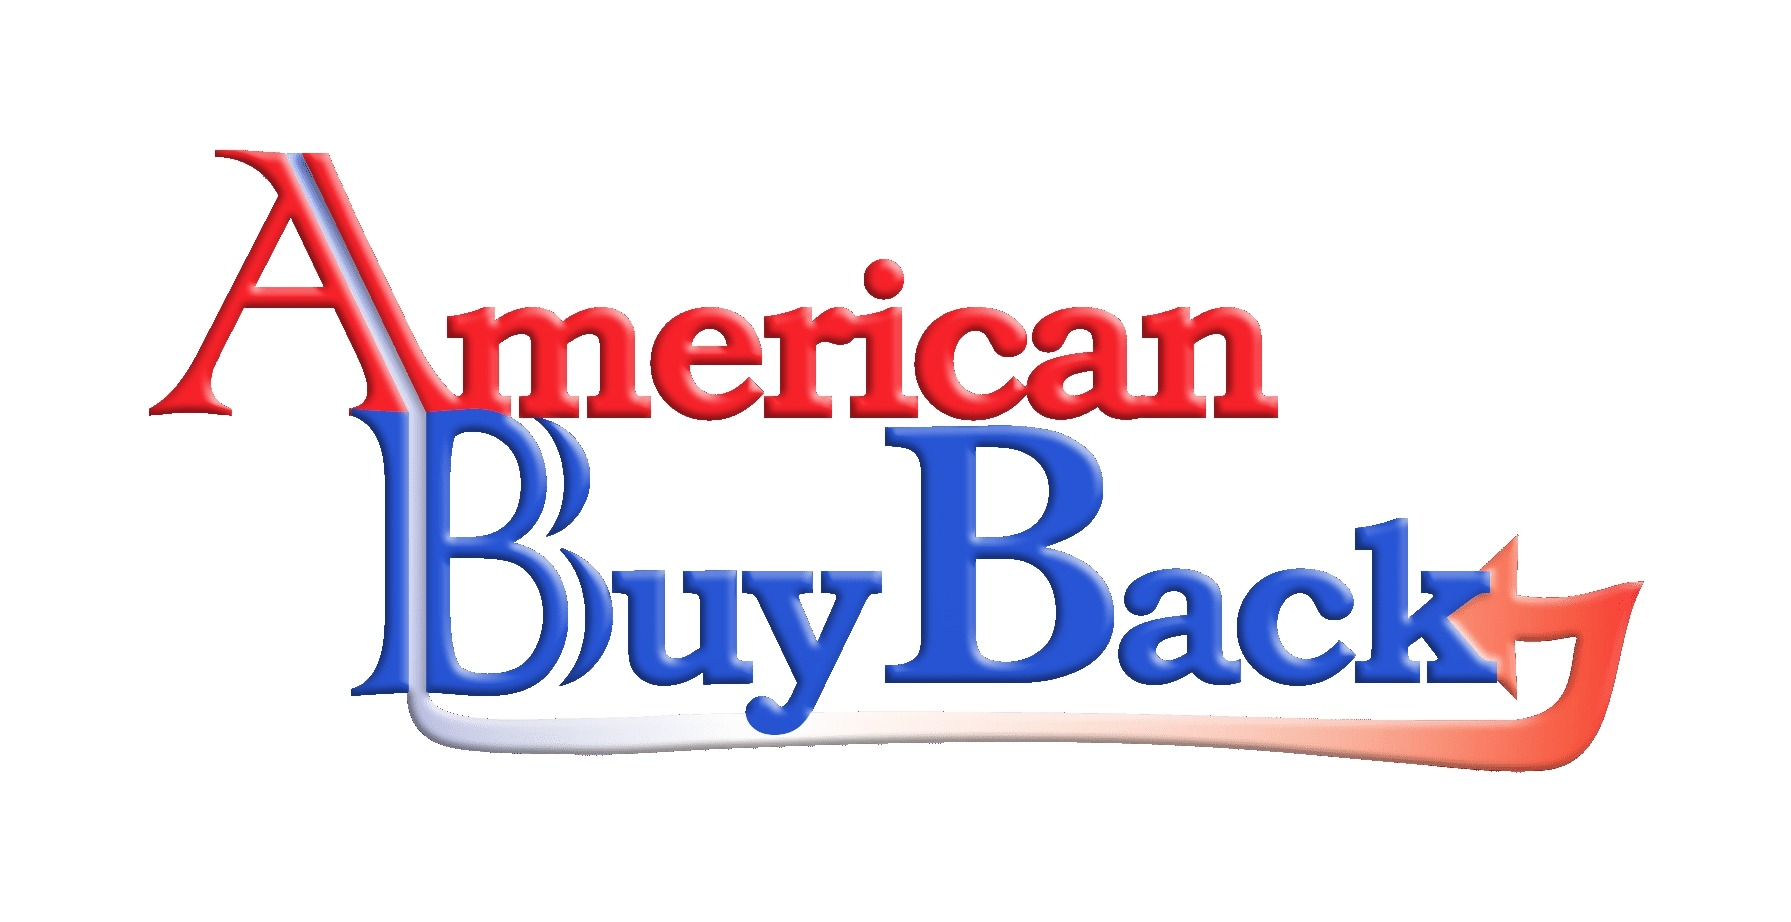 American Buy Back coupon code